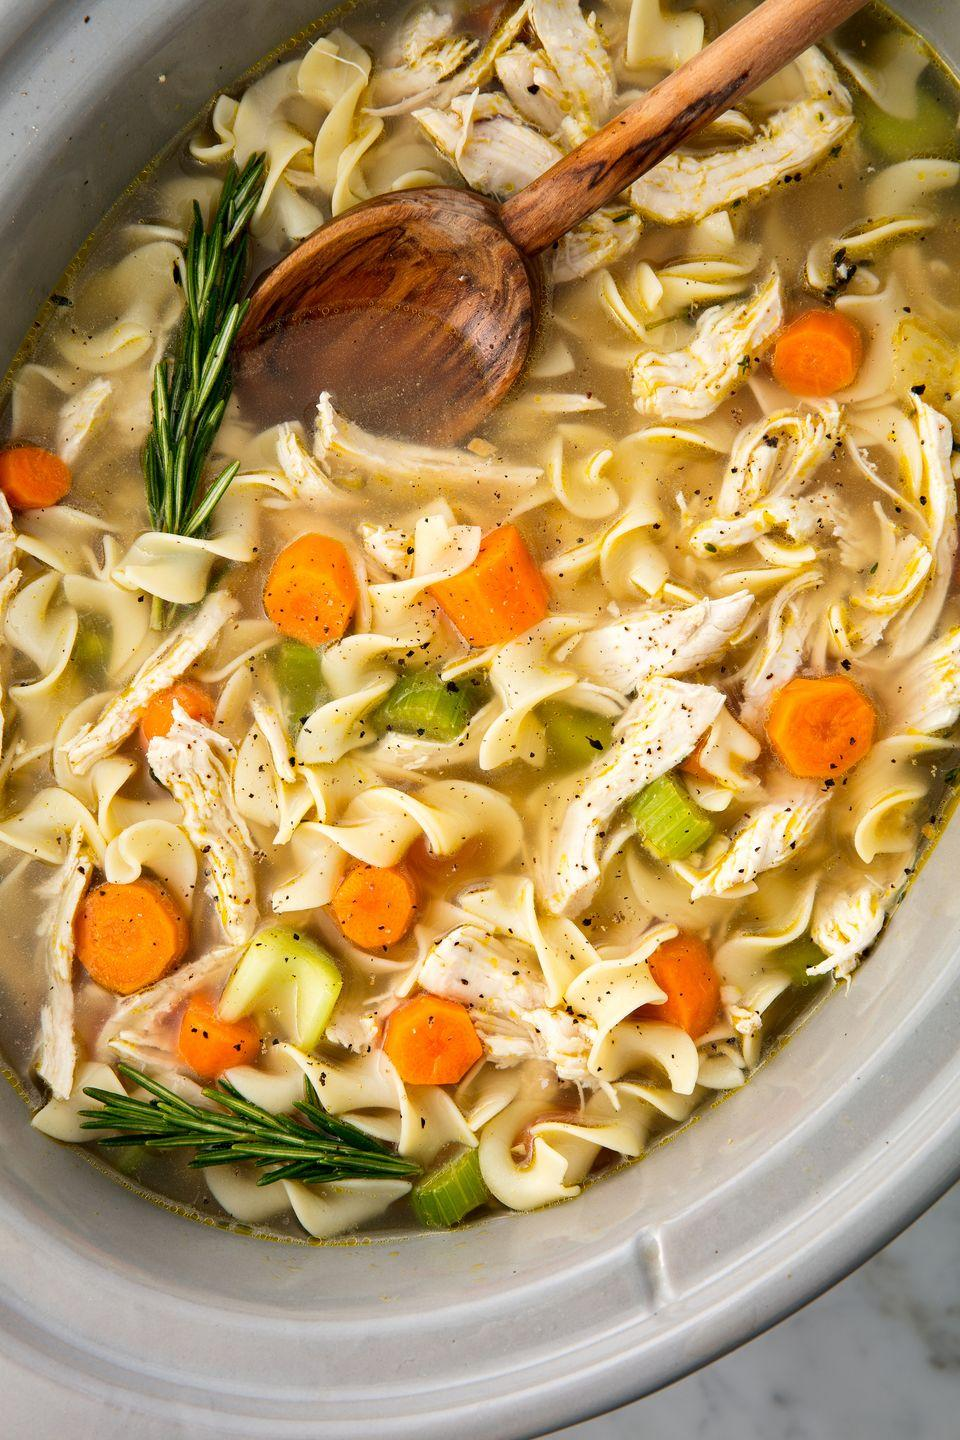 "<p>The easiest way to make the most comforting meal.</p><p>Get the recipe from <a href=""https://www.delish.com/cooking/recipe-ideas/recipes/a55661/easy-crockpot-chicken-noodle-soup-recipe/"" rel=""nofollow noopener"" target=""_blank"" data-ylk=""slk:Delish"" class=""link rapid-noclick-resp"">Delish</a>.</p><p><strong><a class=""link rapid-noclick-resp"" href=""https://www.amazon.com/Hamilton-Beach-33262A-Cooker-6-Quart/dp/B00IWOJSJK/ref=sr_1_4?s=home-garden&ie=UTF8&qid=1500676505&sr=1-4&keywords=slow+cooker+hamilton+beach&tag=syn-yahoo-20&ascsubtag=%5Bartid%7C1782.g.1419%5Bsrc%7Cyahoo-us"" rel=""nofollow noopener"" target=""_blank"" data-ylk=""slk:BUY NOW"">BUY NOW</a><em> Hamilton Beach Slow Cooker, $33, amazon.com</em></strong></p>"